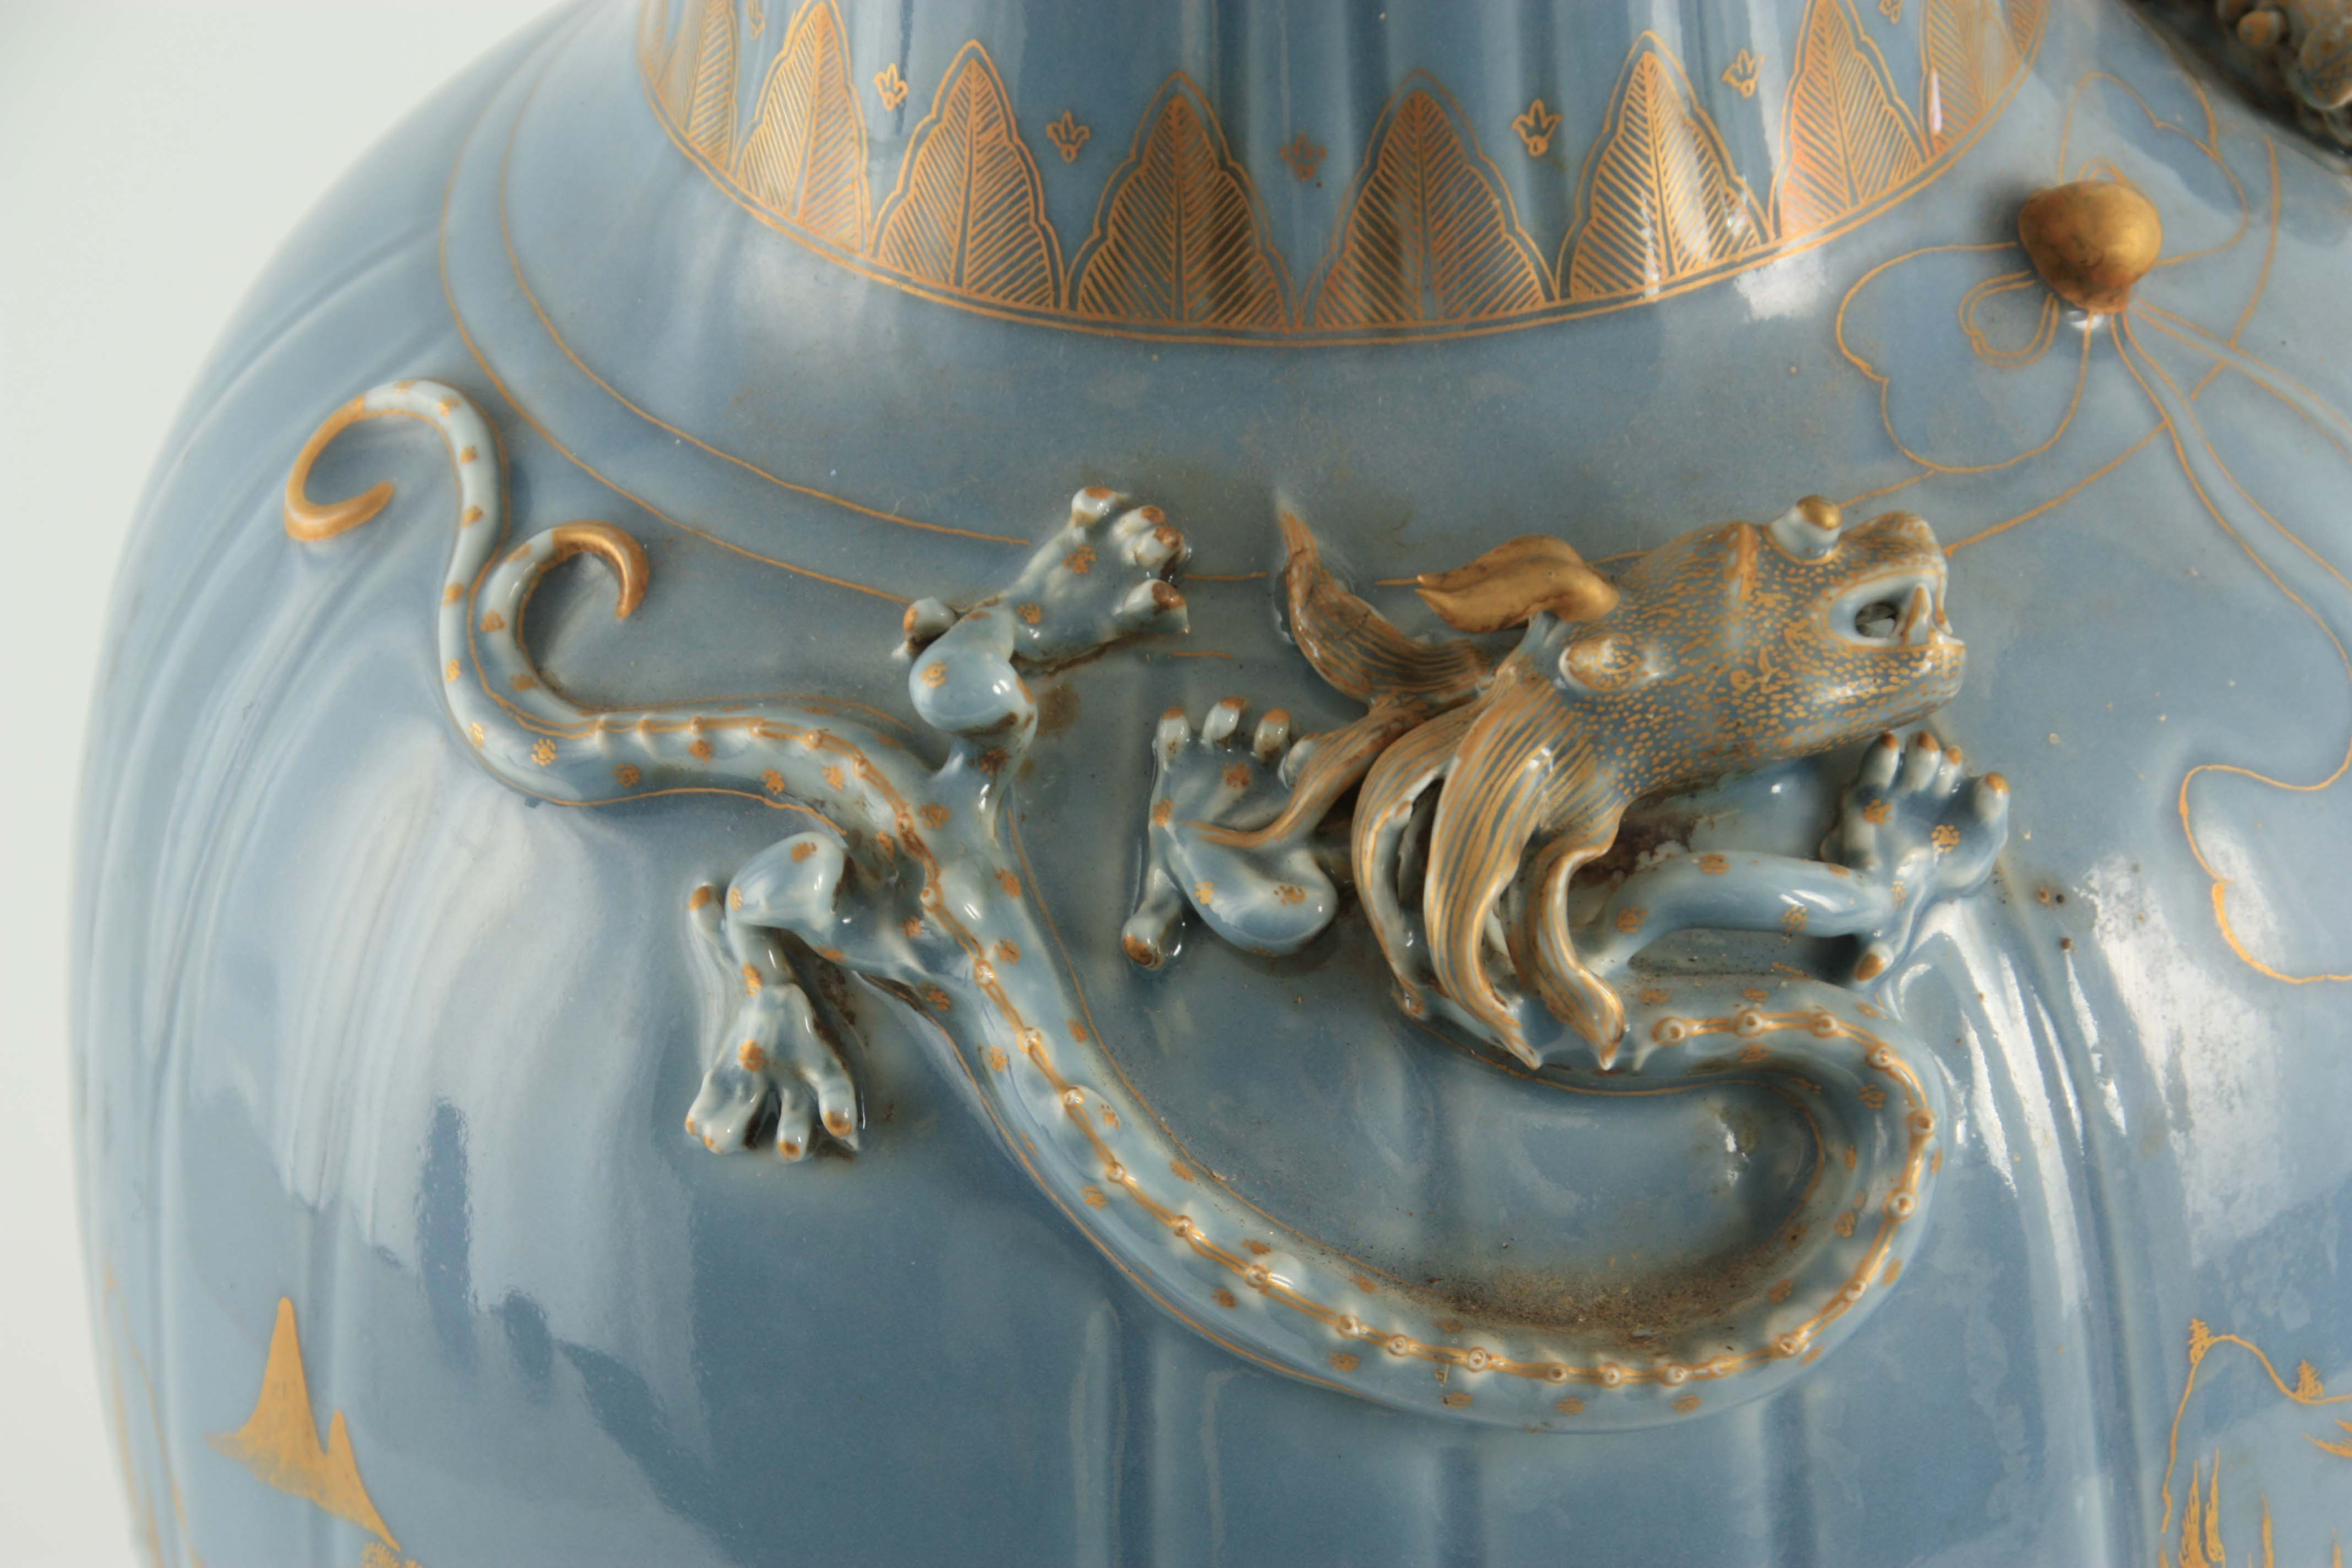 AN IMPRESSIVE 19TH CENTURY CHINESE BLUE AND GILT DECORATED VASE of ribbed shape with scrolled - Image 5 of 7